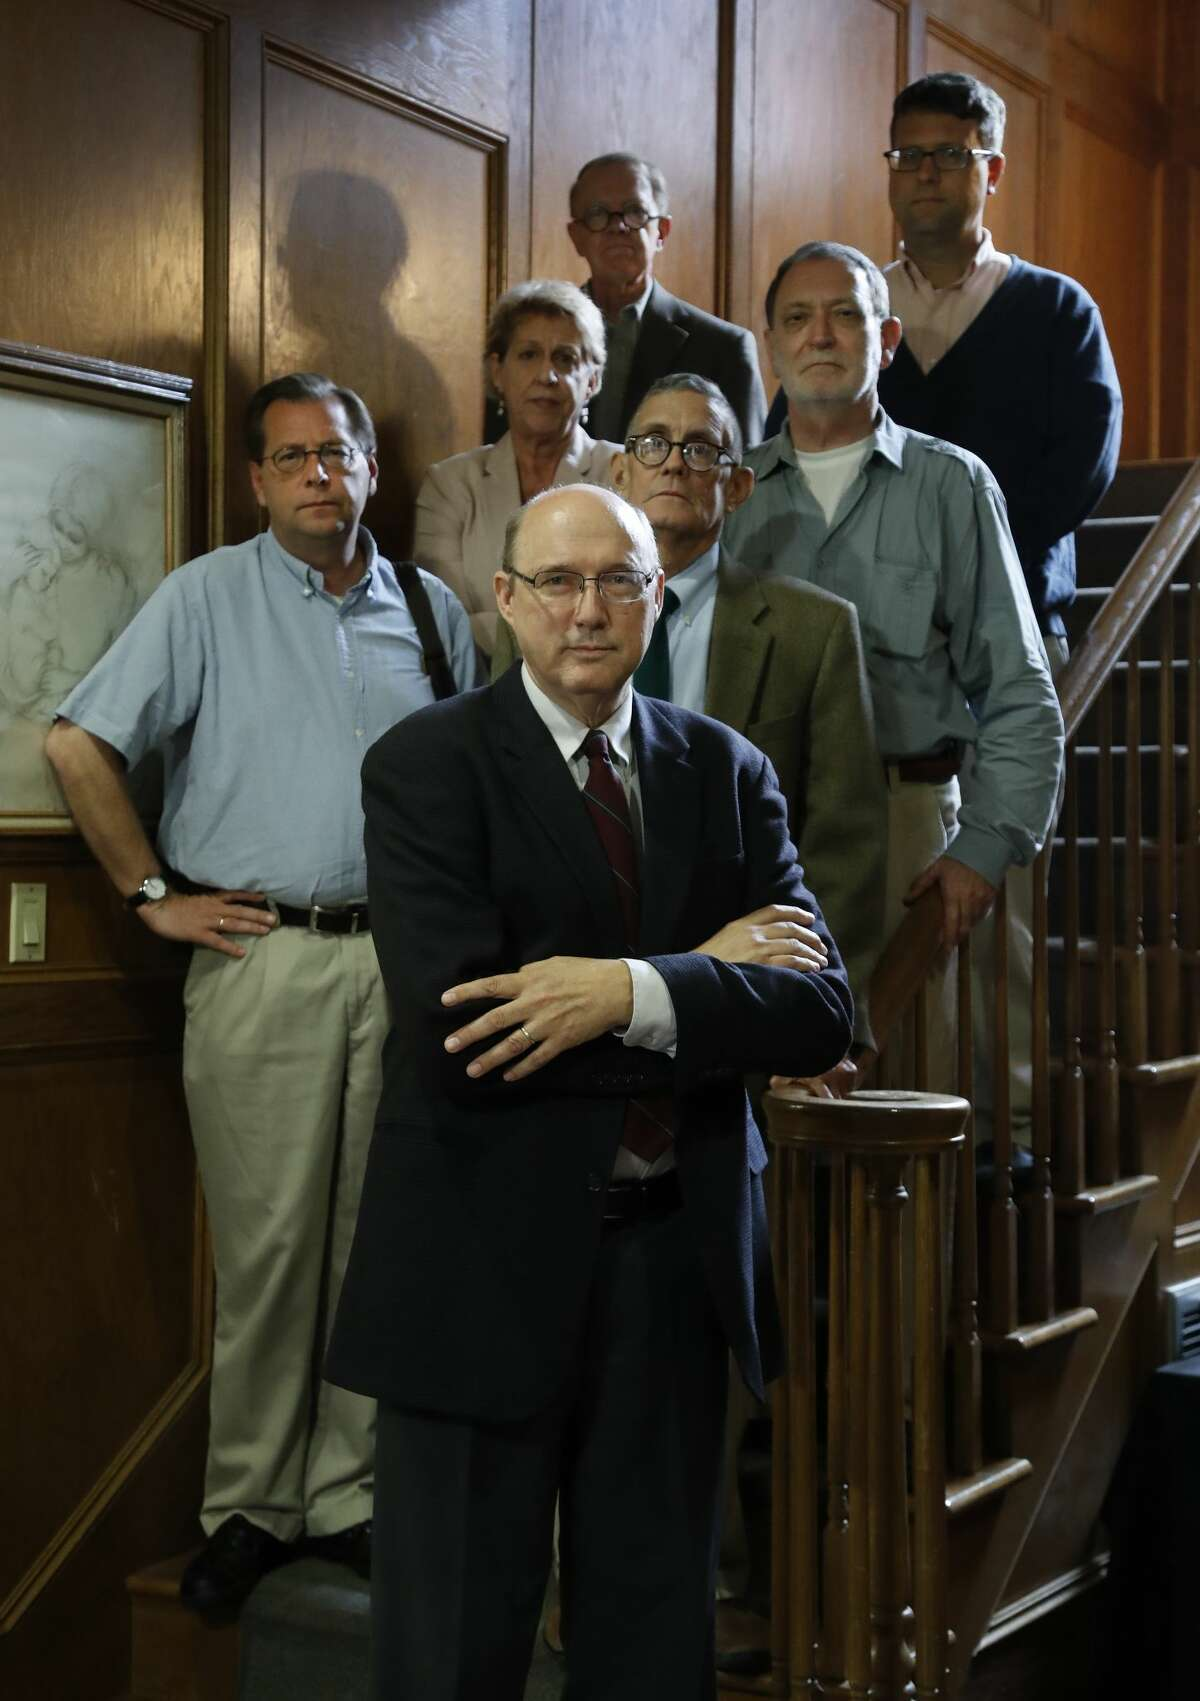 John Hittinger, foreground, and other philosophy professors at the University of St. Thomas, gathered to strategize, Monday, May 22, 2017, as their department is being considered for reorganization and possible program elimination by administrators. ( Karen Warren / Houston Chronicle )